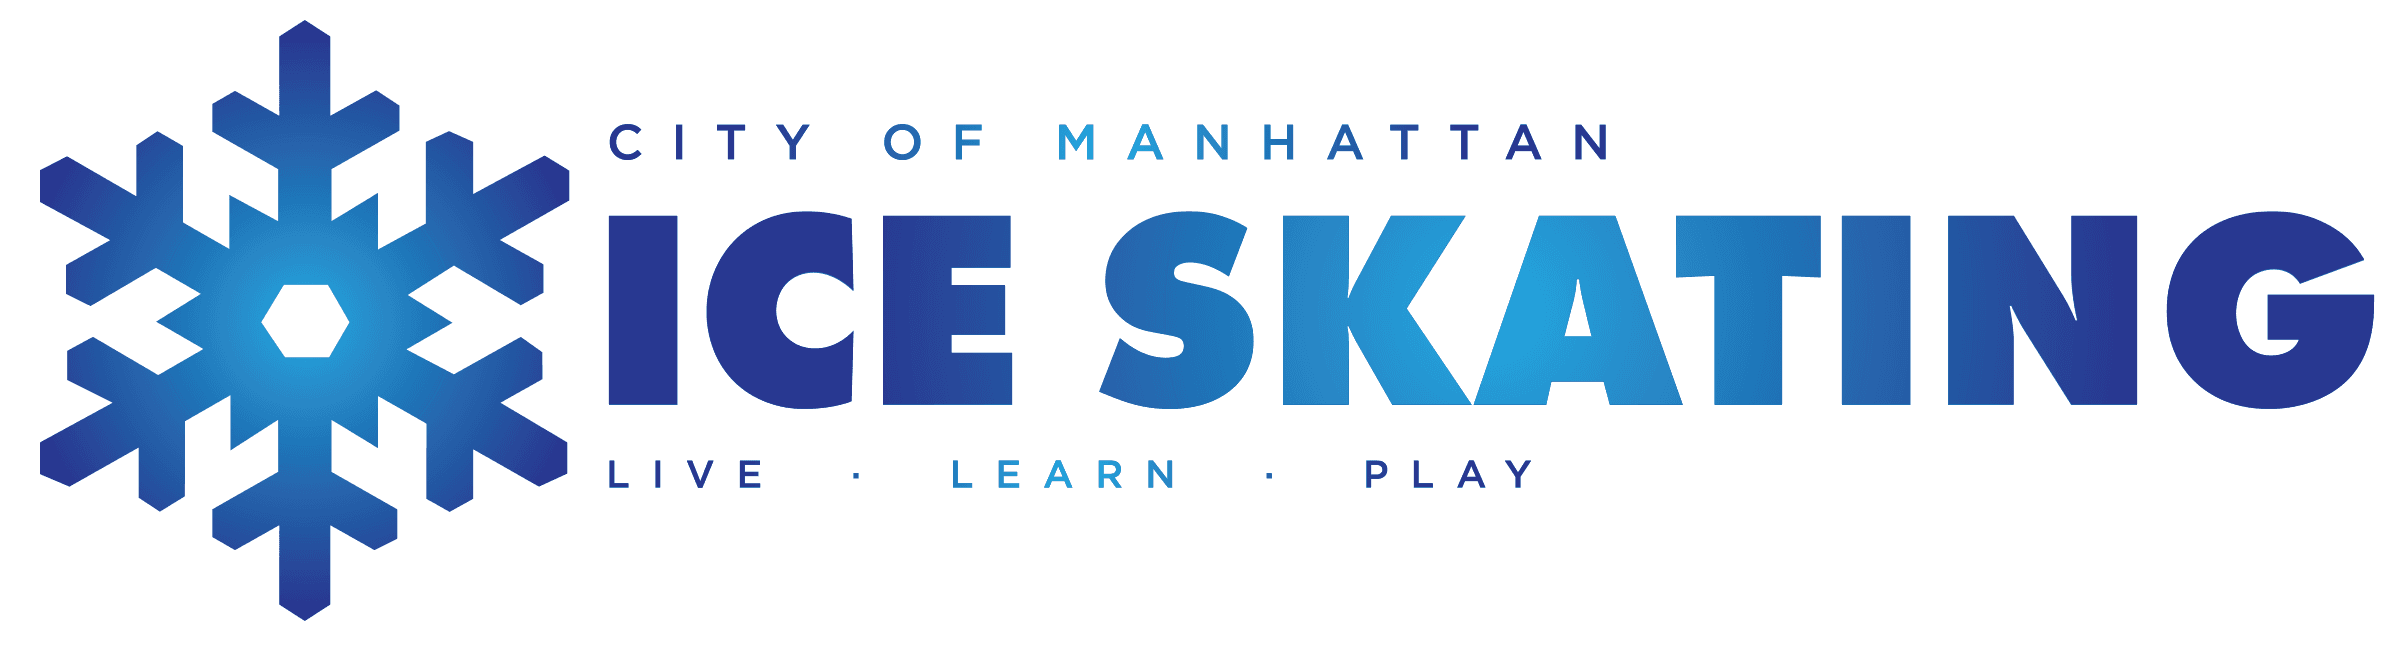 ICE SKATING LOGO Horizontal